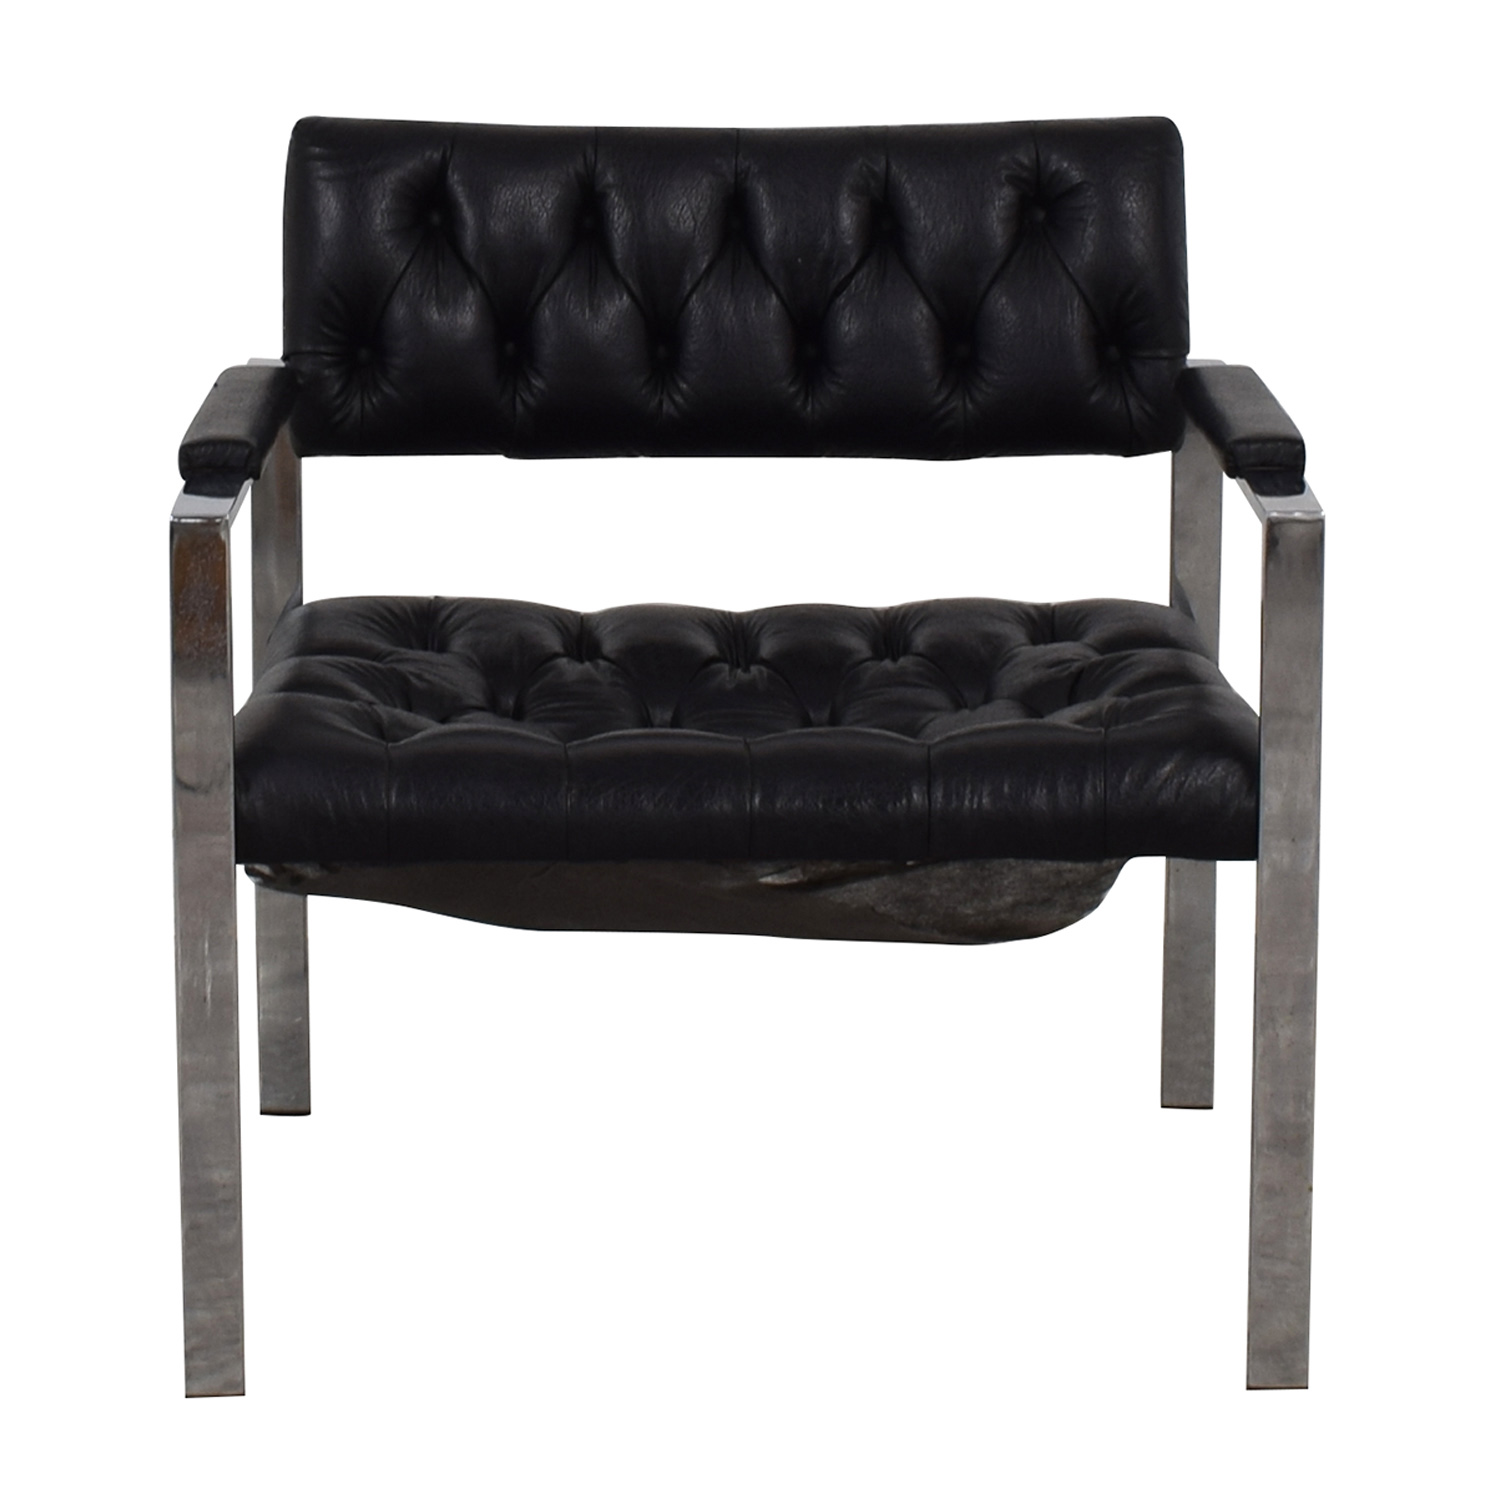 Milo Baughman for Thayer Coggin Milo Baughman for Thayer Coggin Black Tufted Arm Chair Accent Chairs